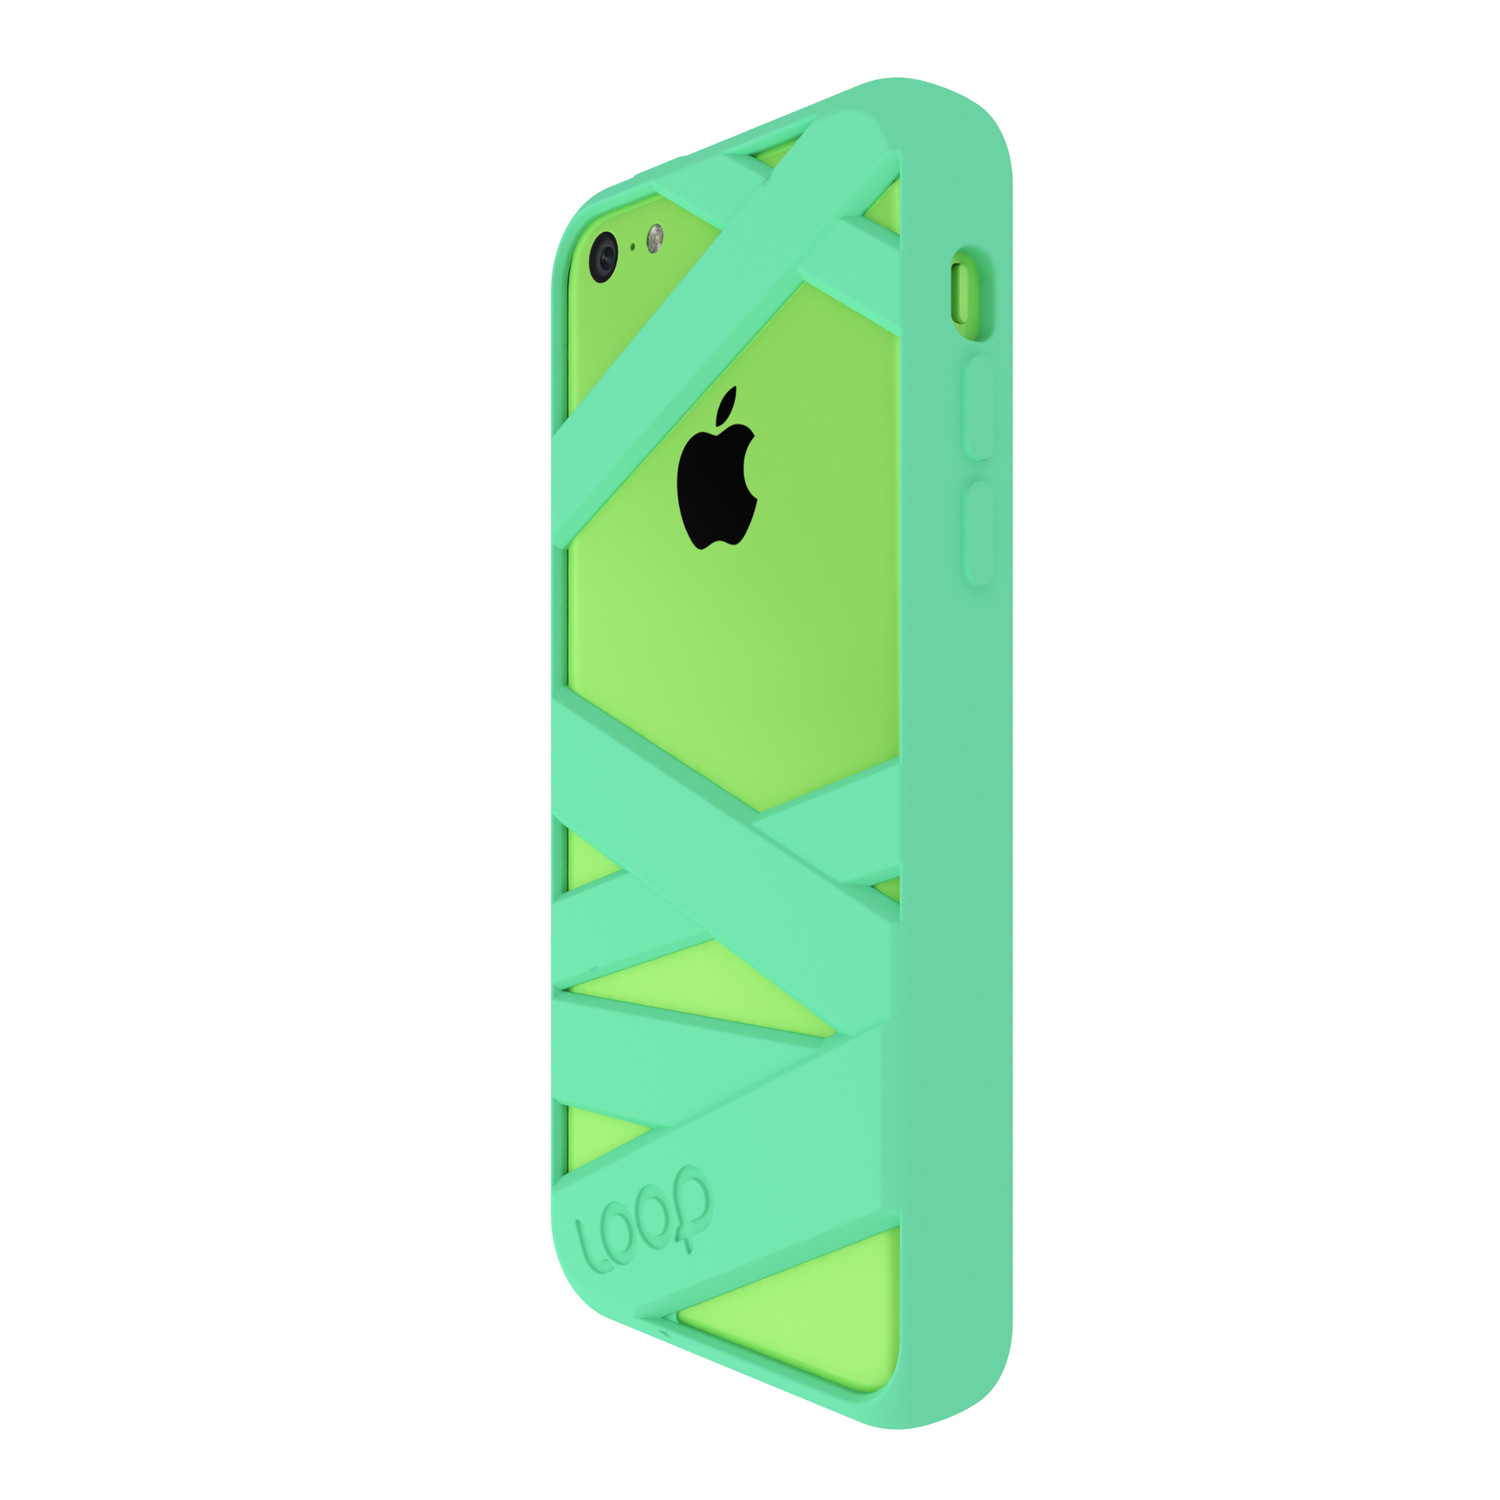 mummy case iphone 5c black loop attachment touch